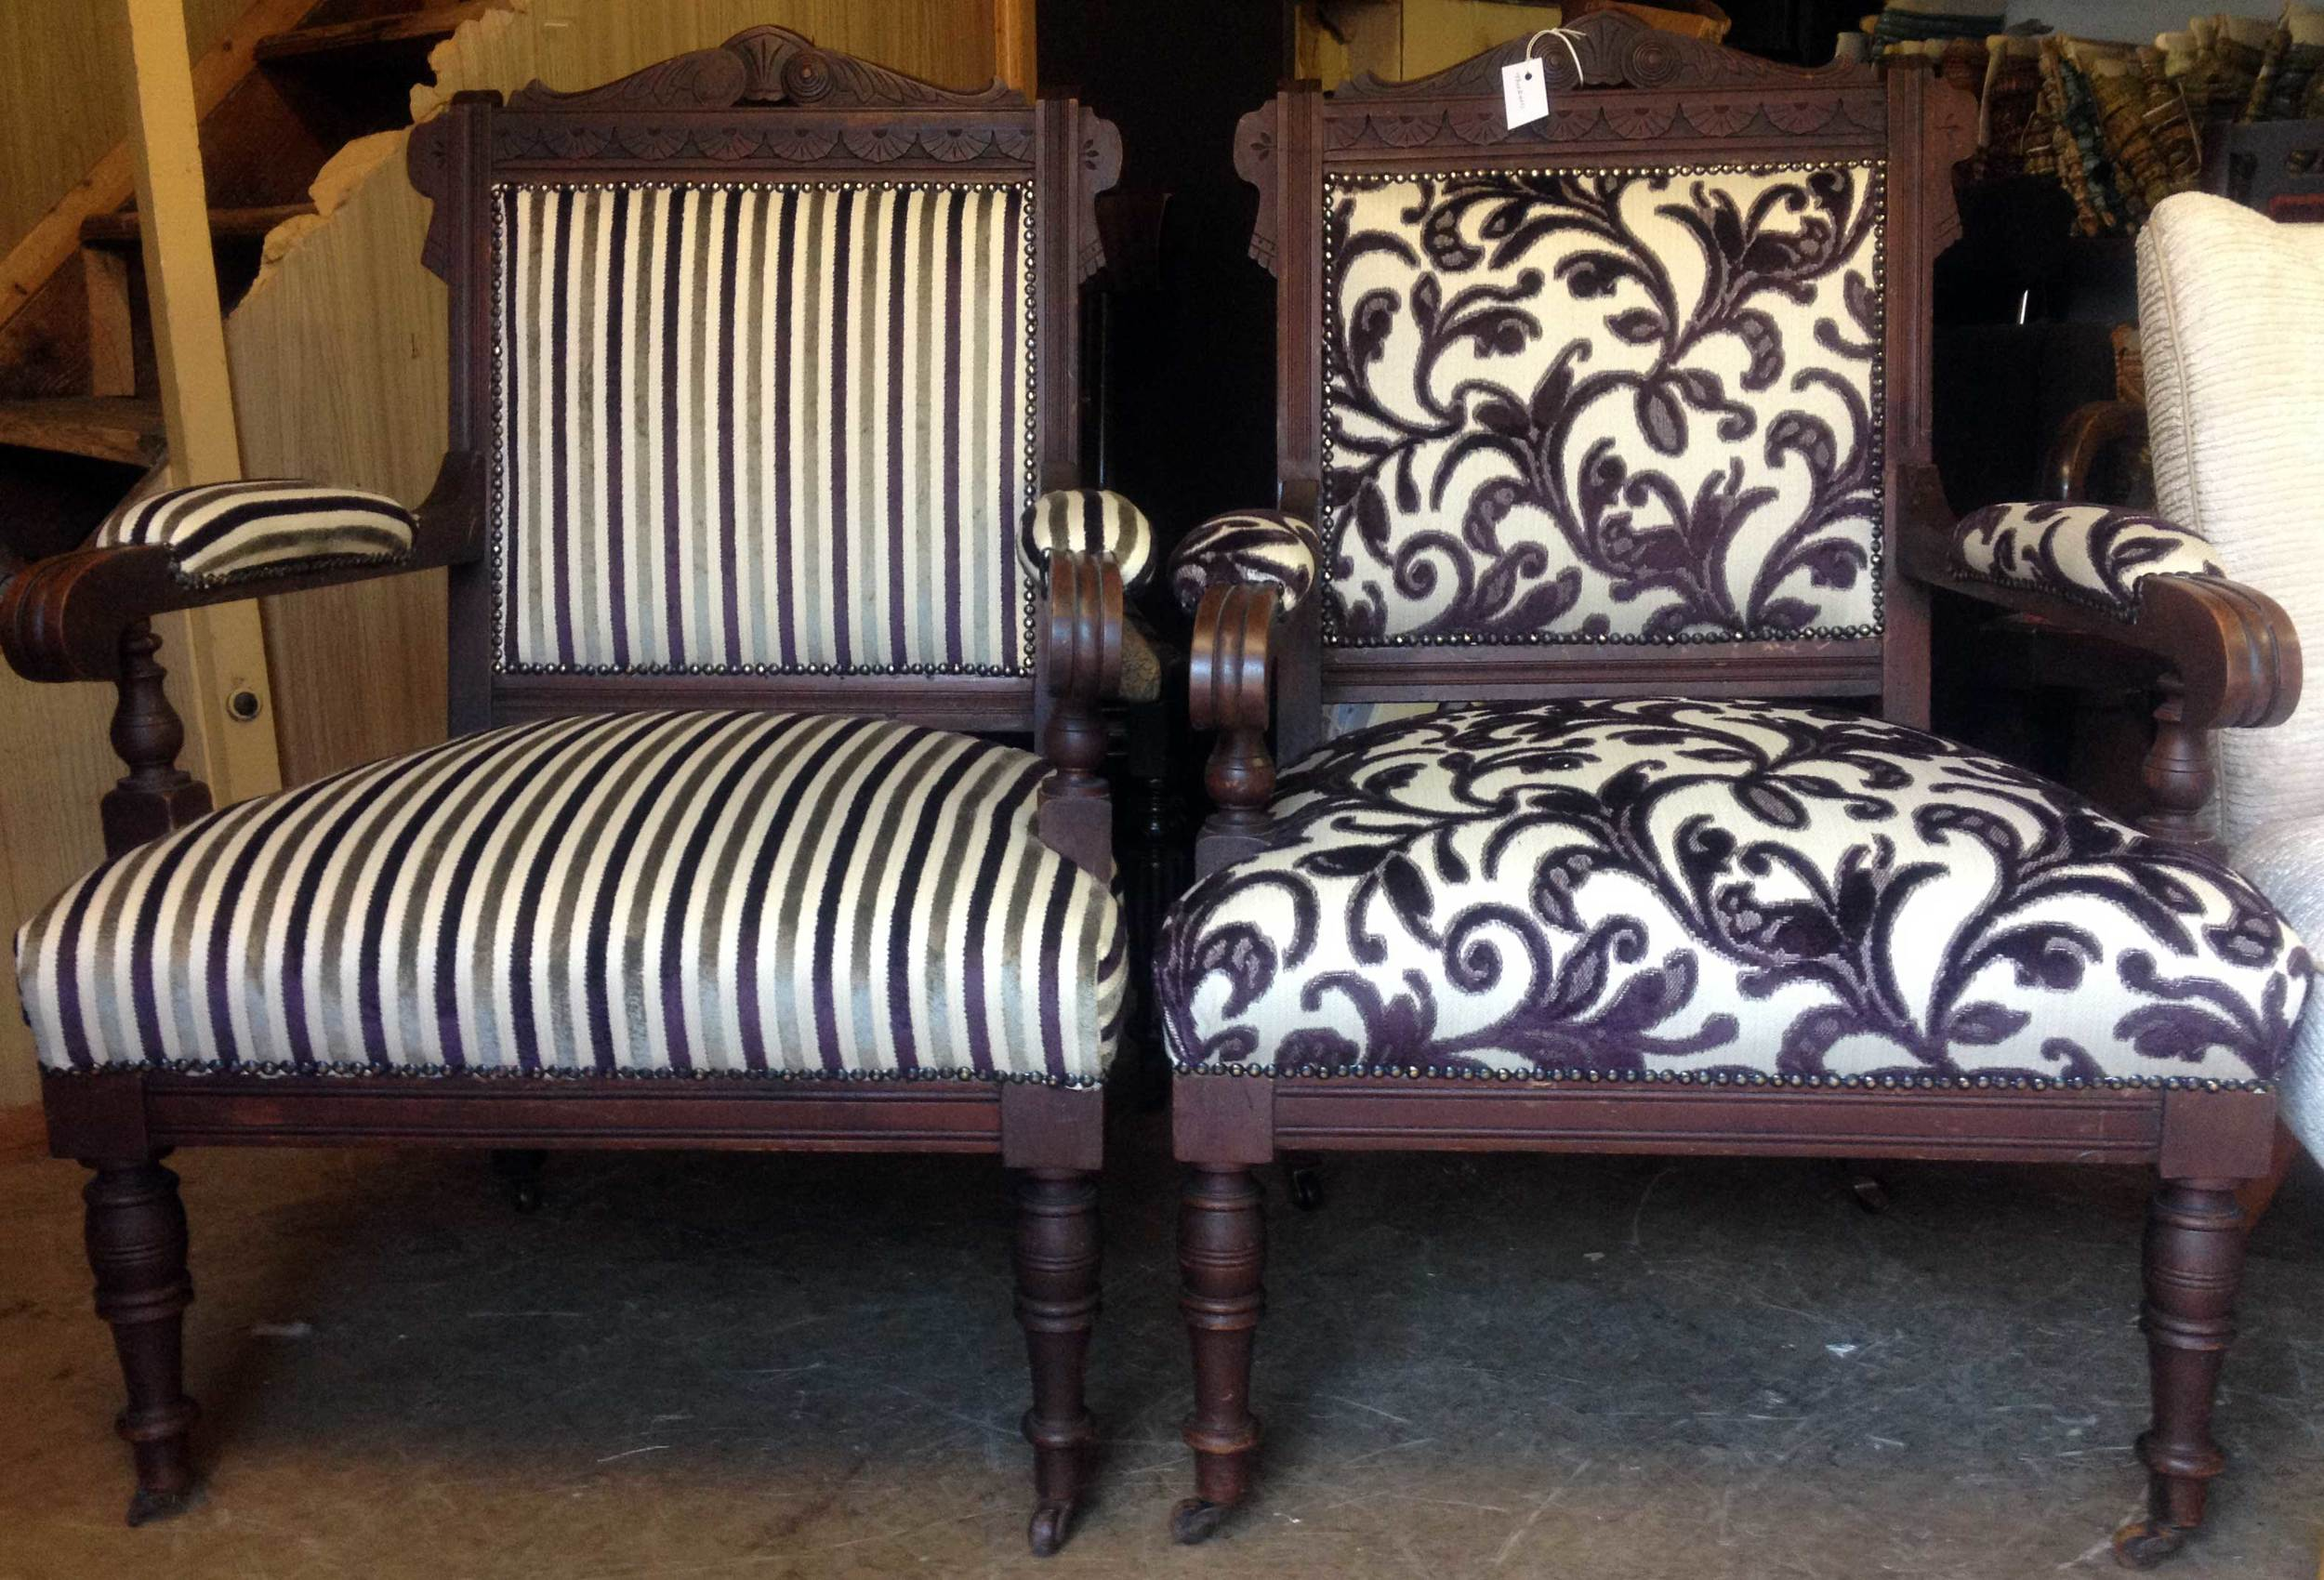 TwoOldChairs-D-WS.jpg